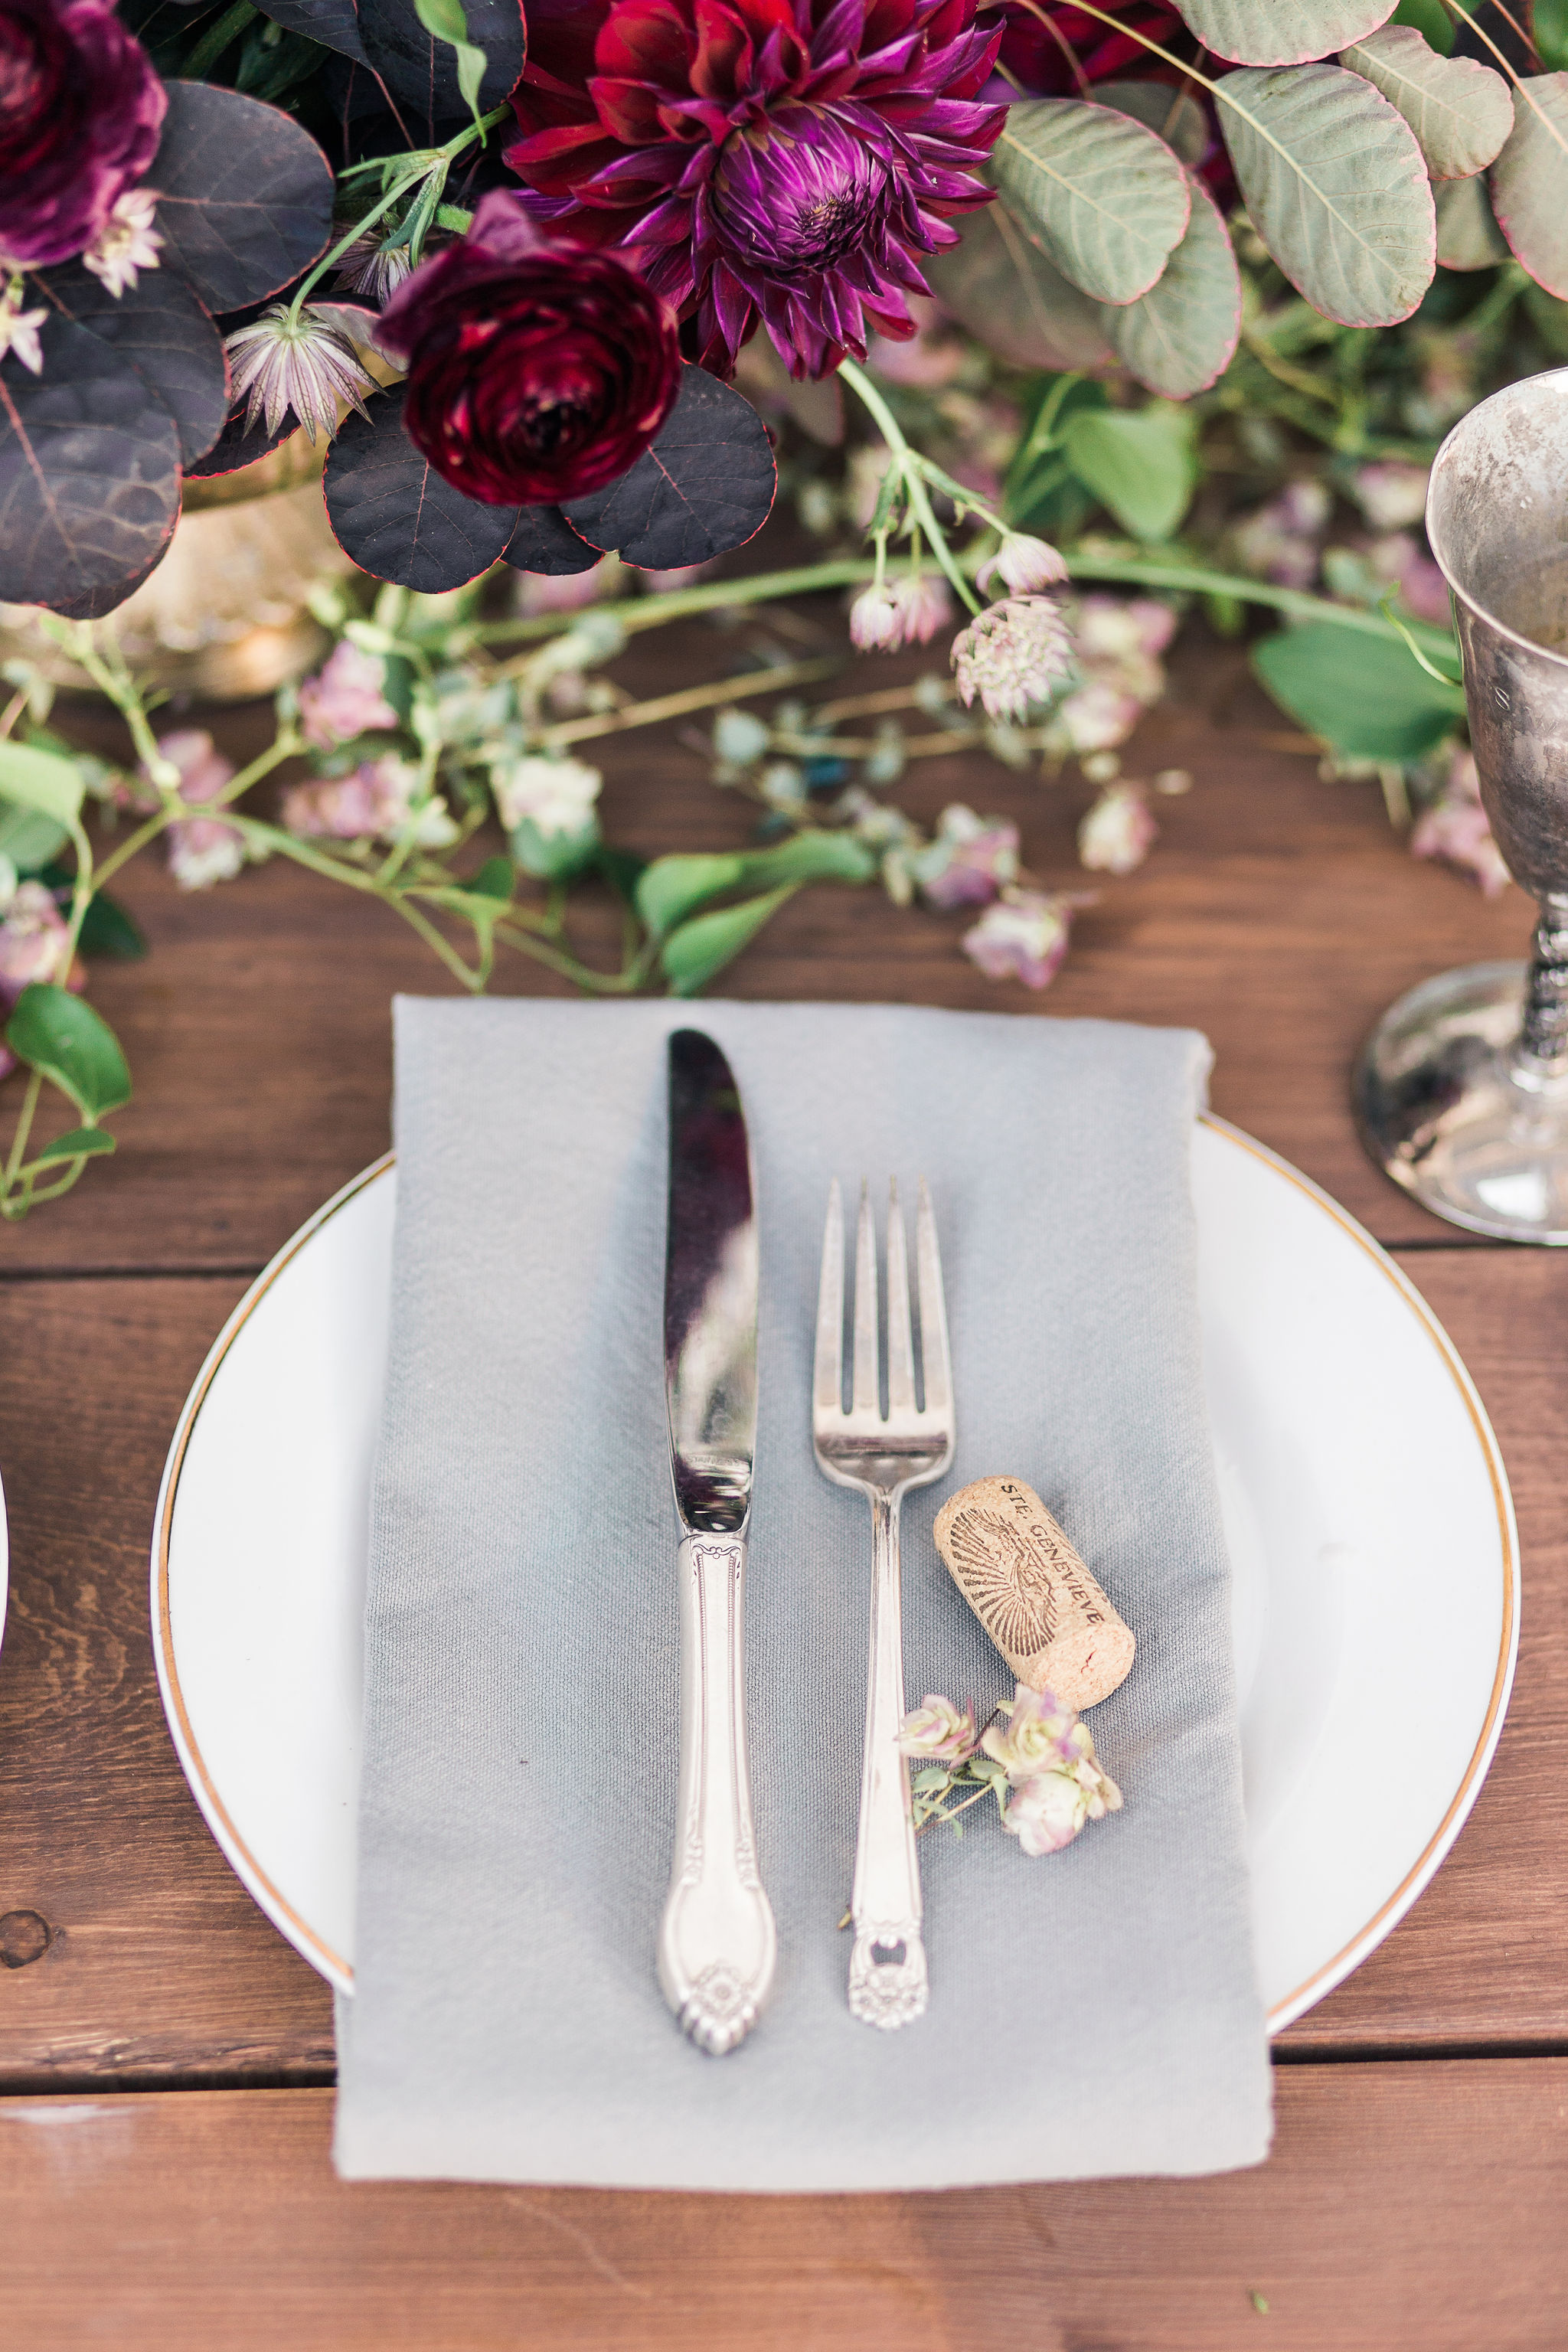 Georgia-Ruth-Photography-Flat-Lays-Table-Details-141.jpg